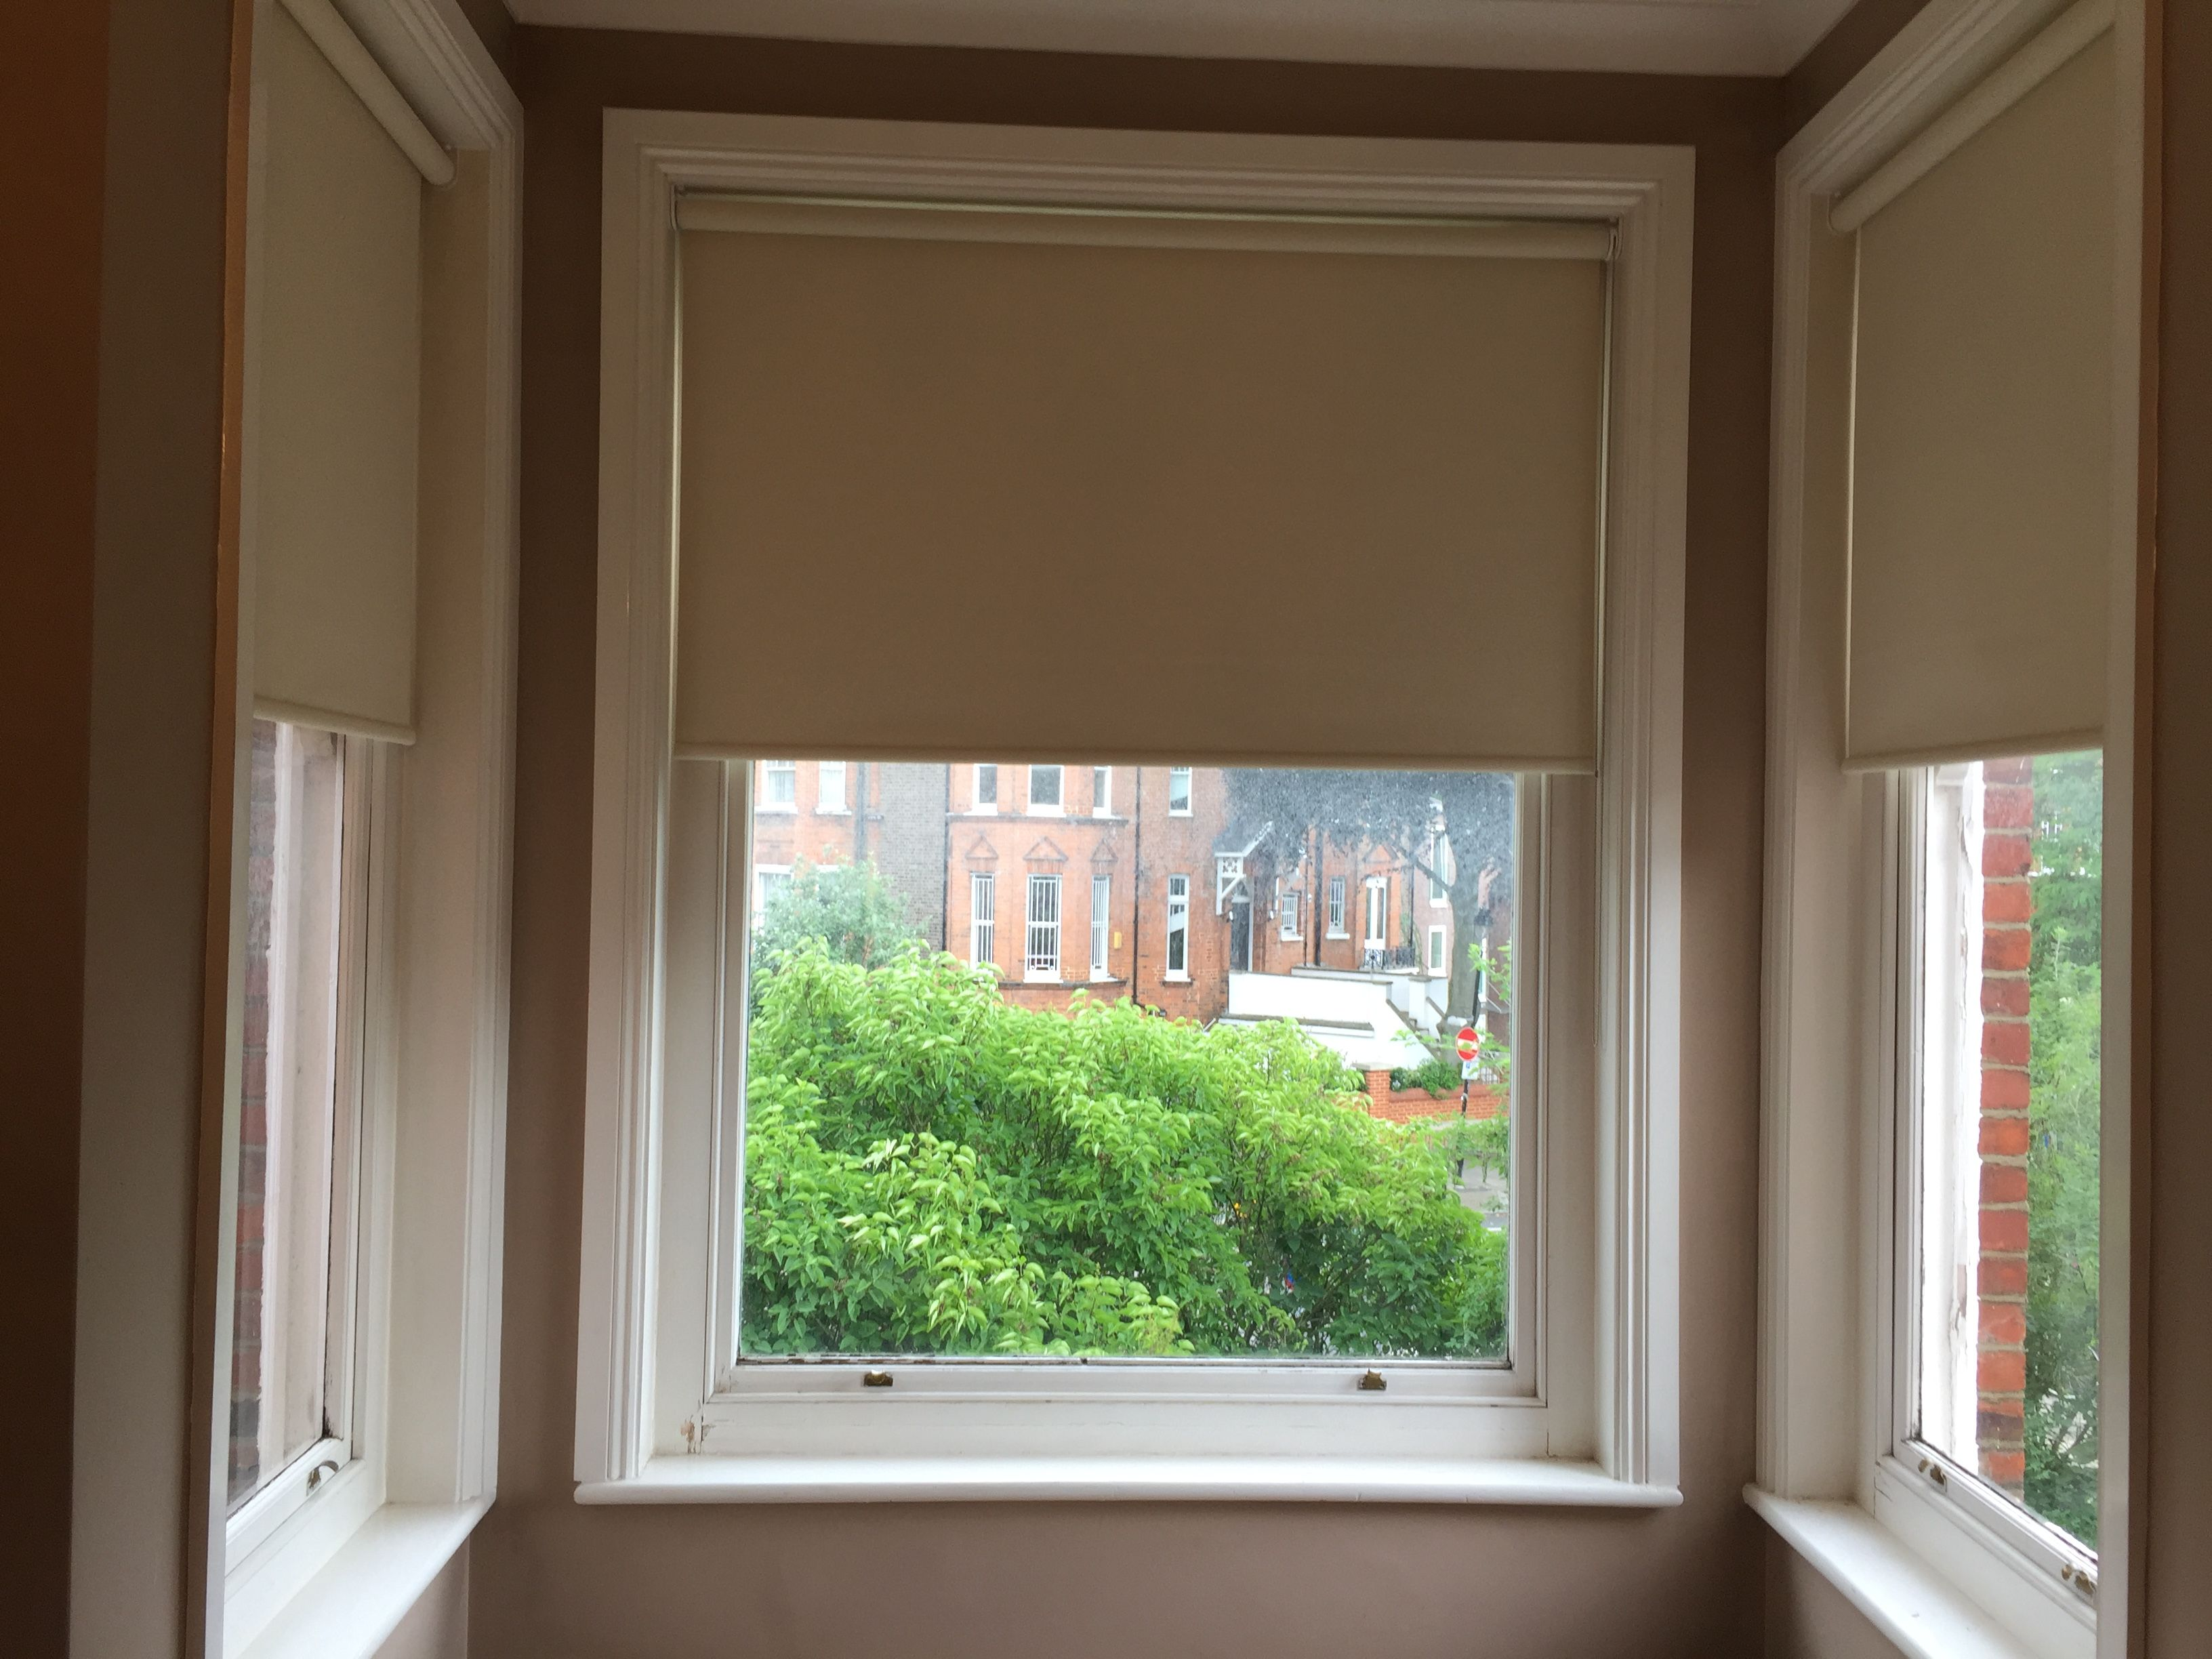 Blackout Roller Blinds Installed To Square Bay Window